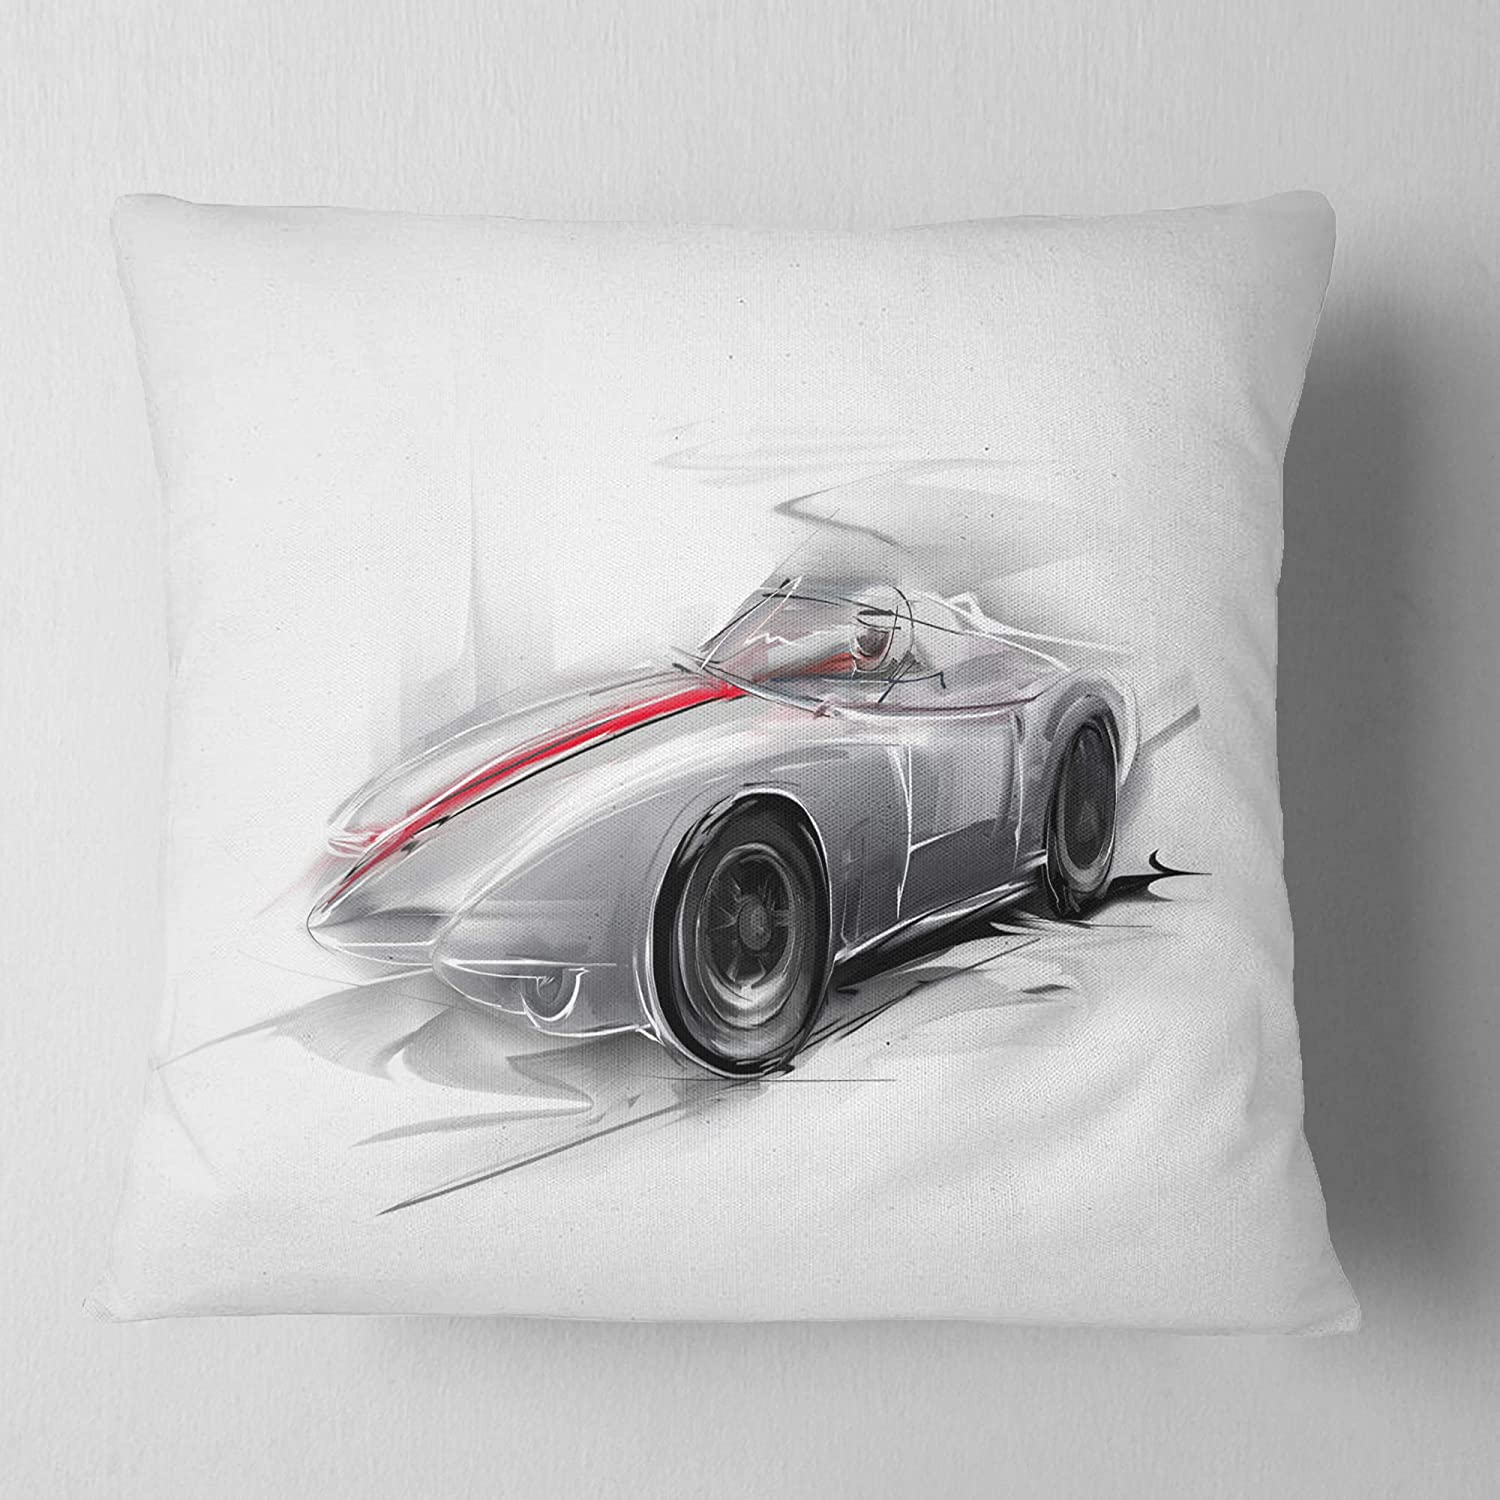 Designart CU7320-26-26 Silver Formula One Digital Art Car Cushion Cover for Living Room in Sofa Throw Pillow 26 in x 26 in Insert Printed On Both Side